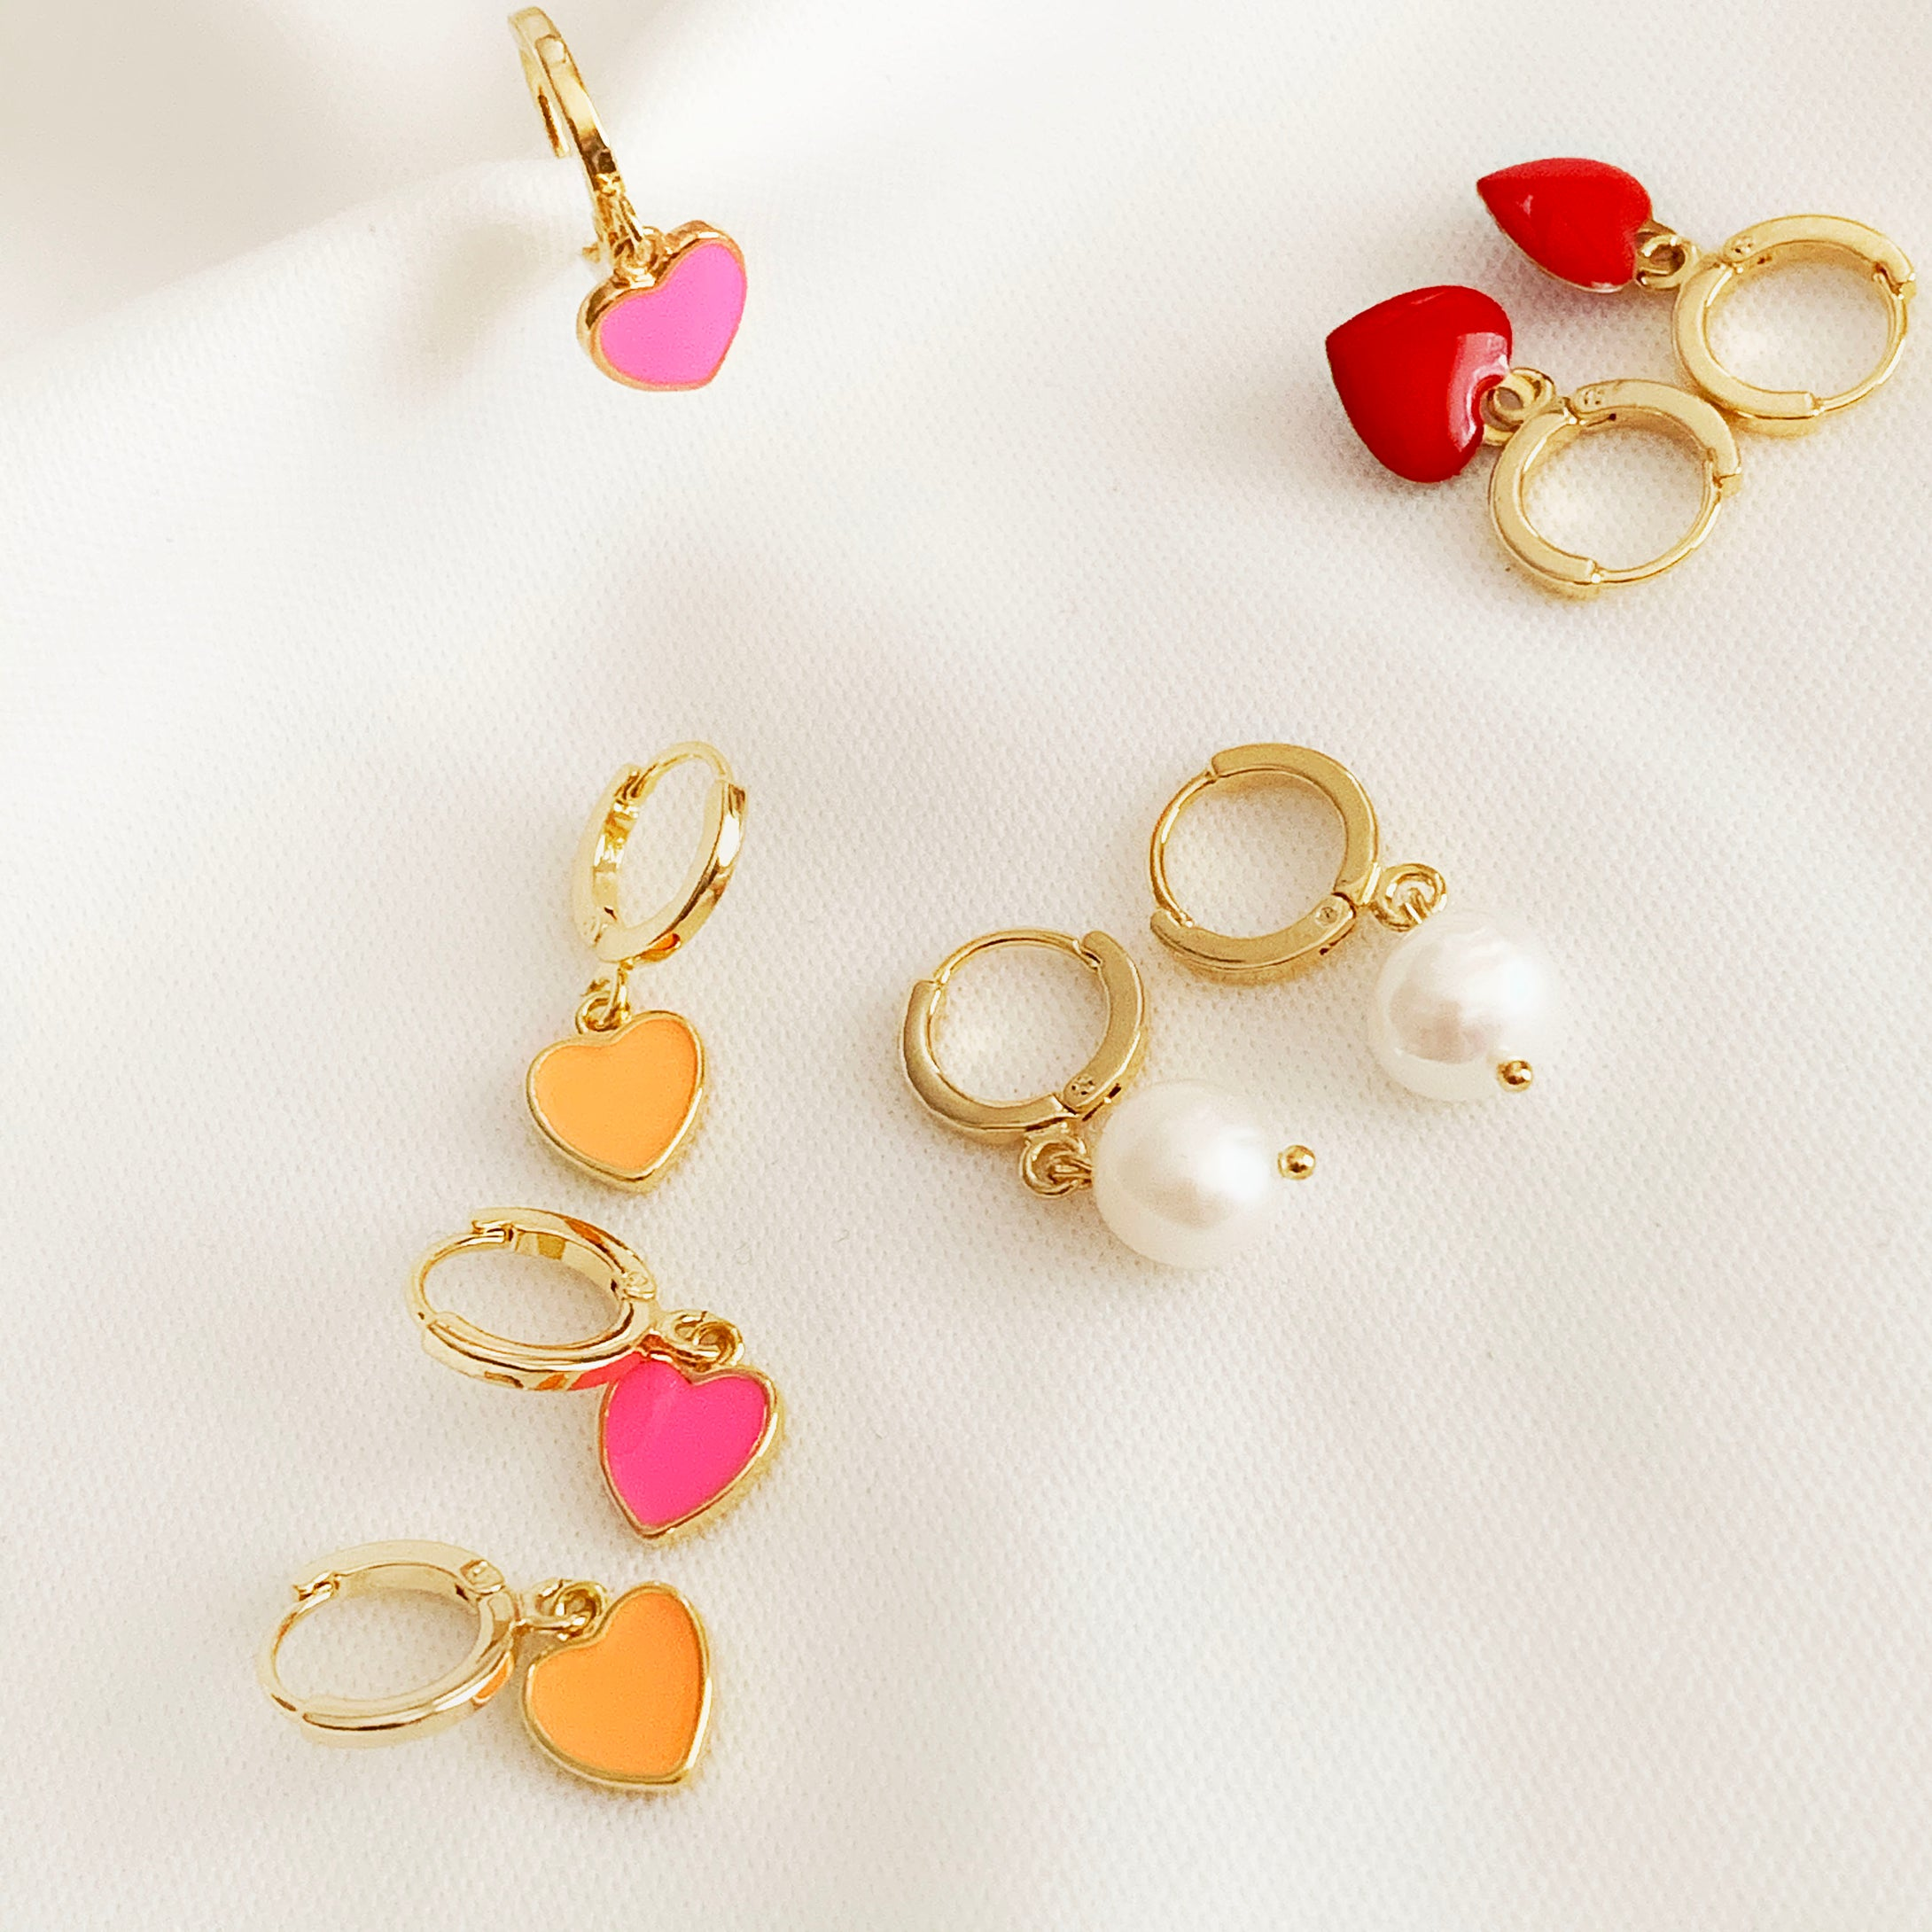 Mini Hoops - Gold Plated Hoops